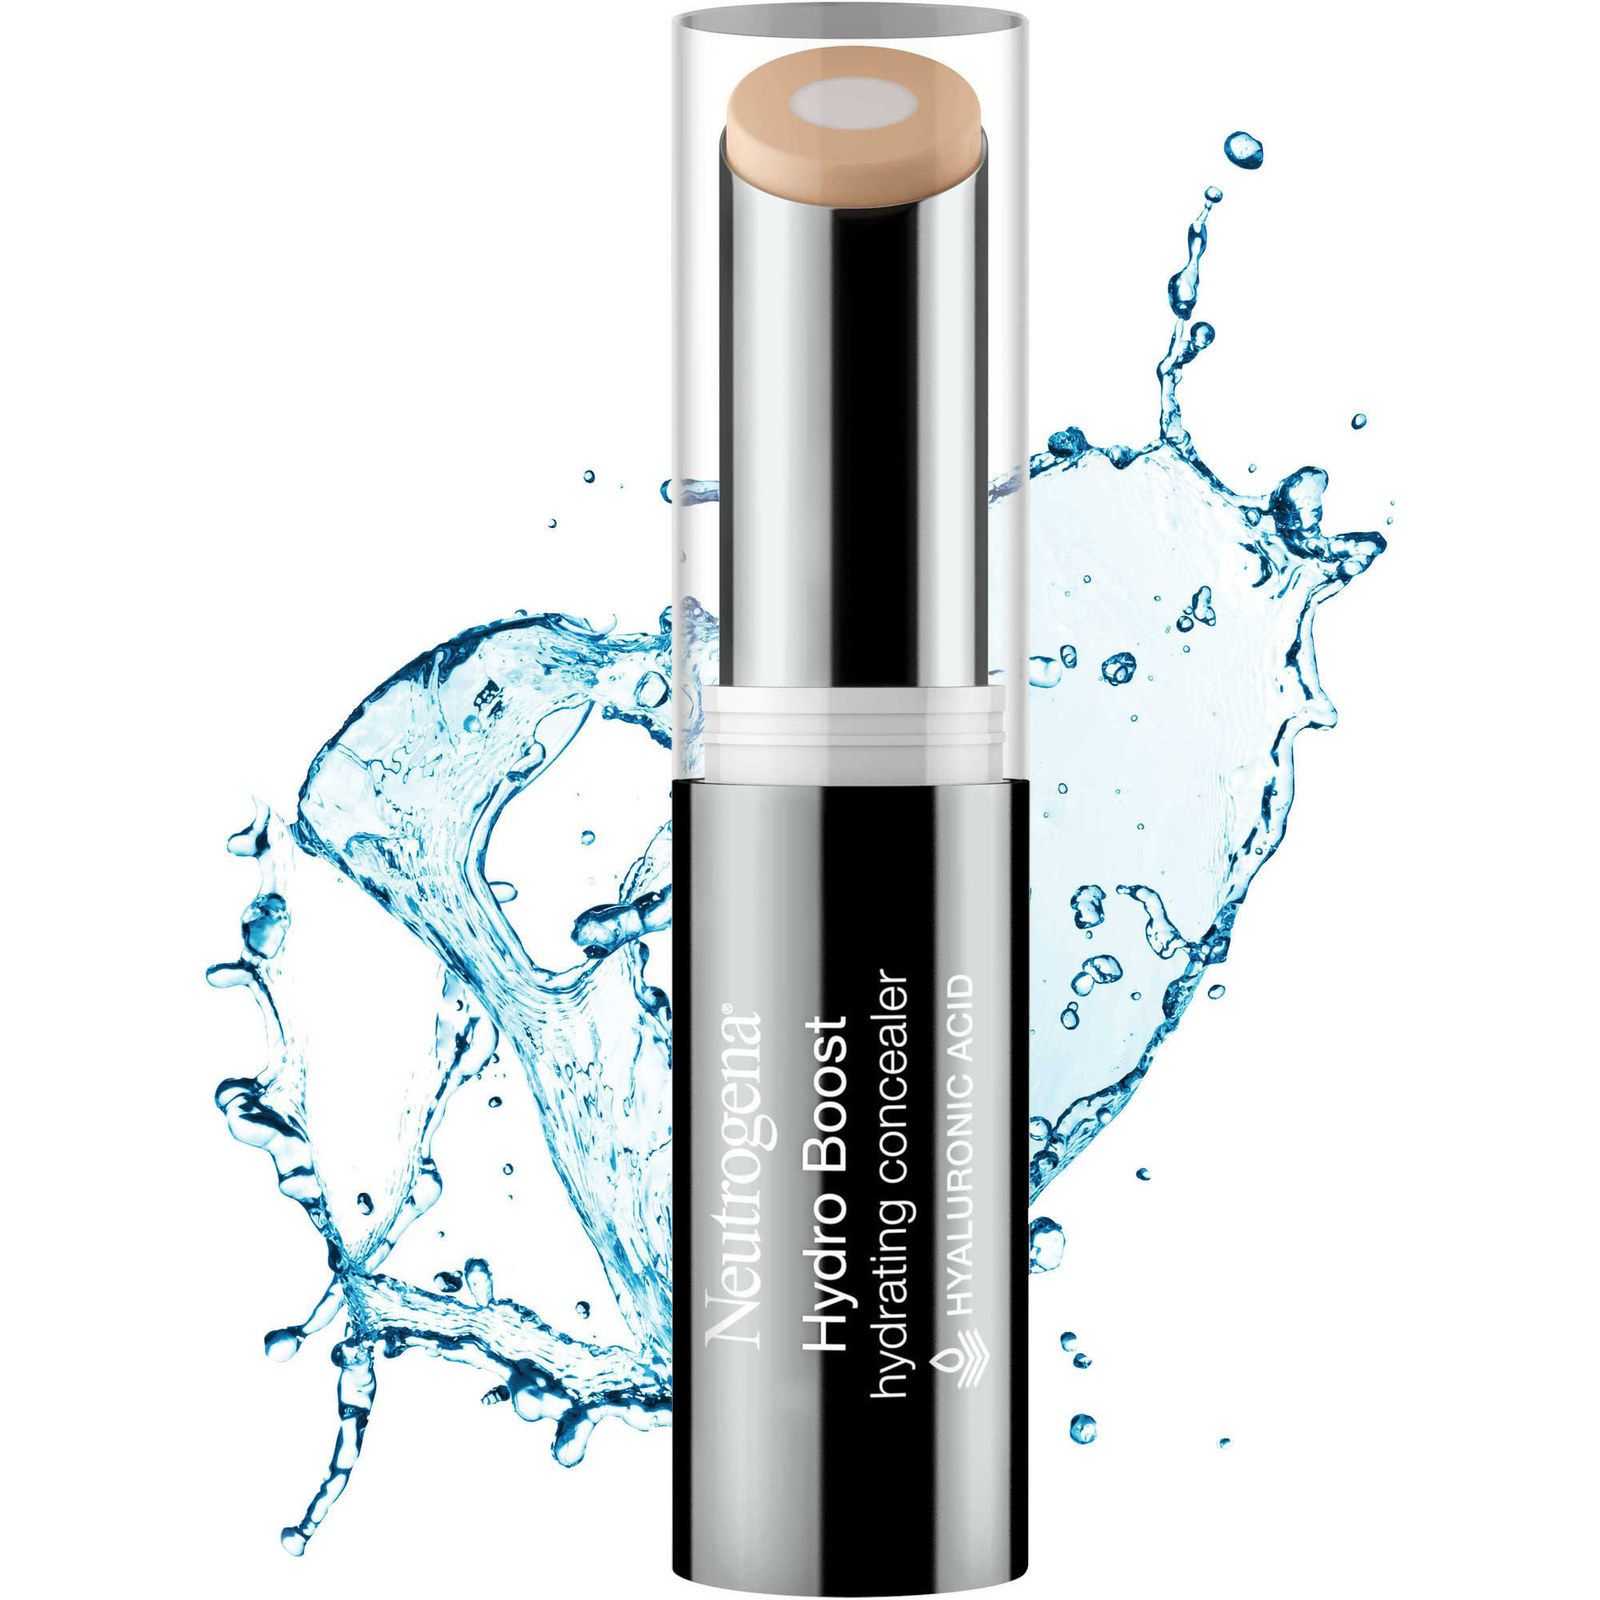 Neutrogena Hydro Boost Hydrating Concealer has an outer